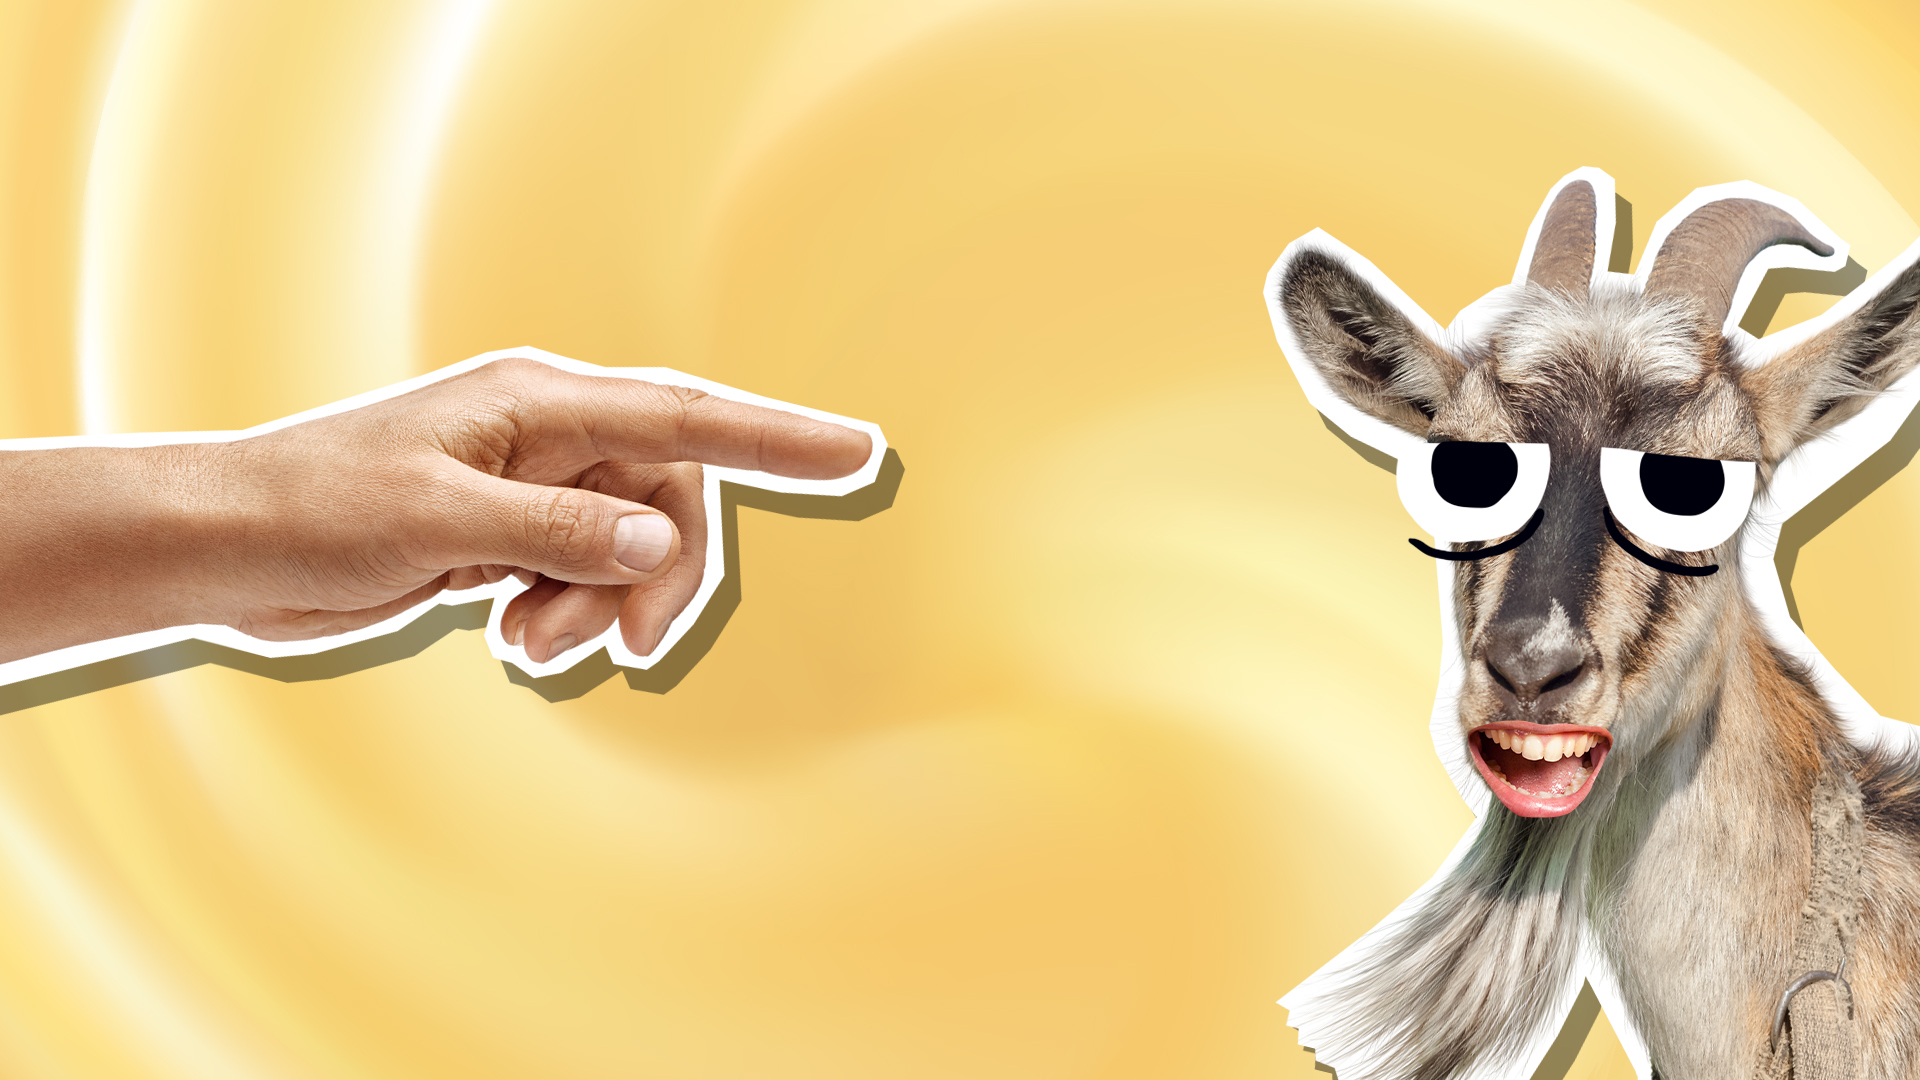 A hand pointing at a goat